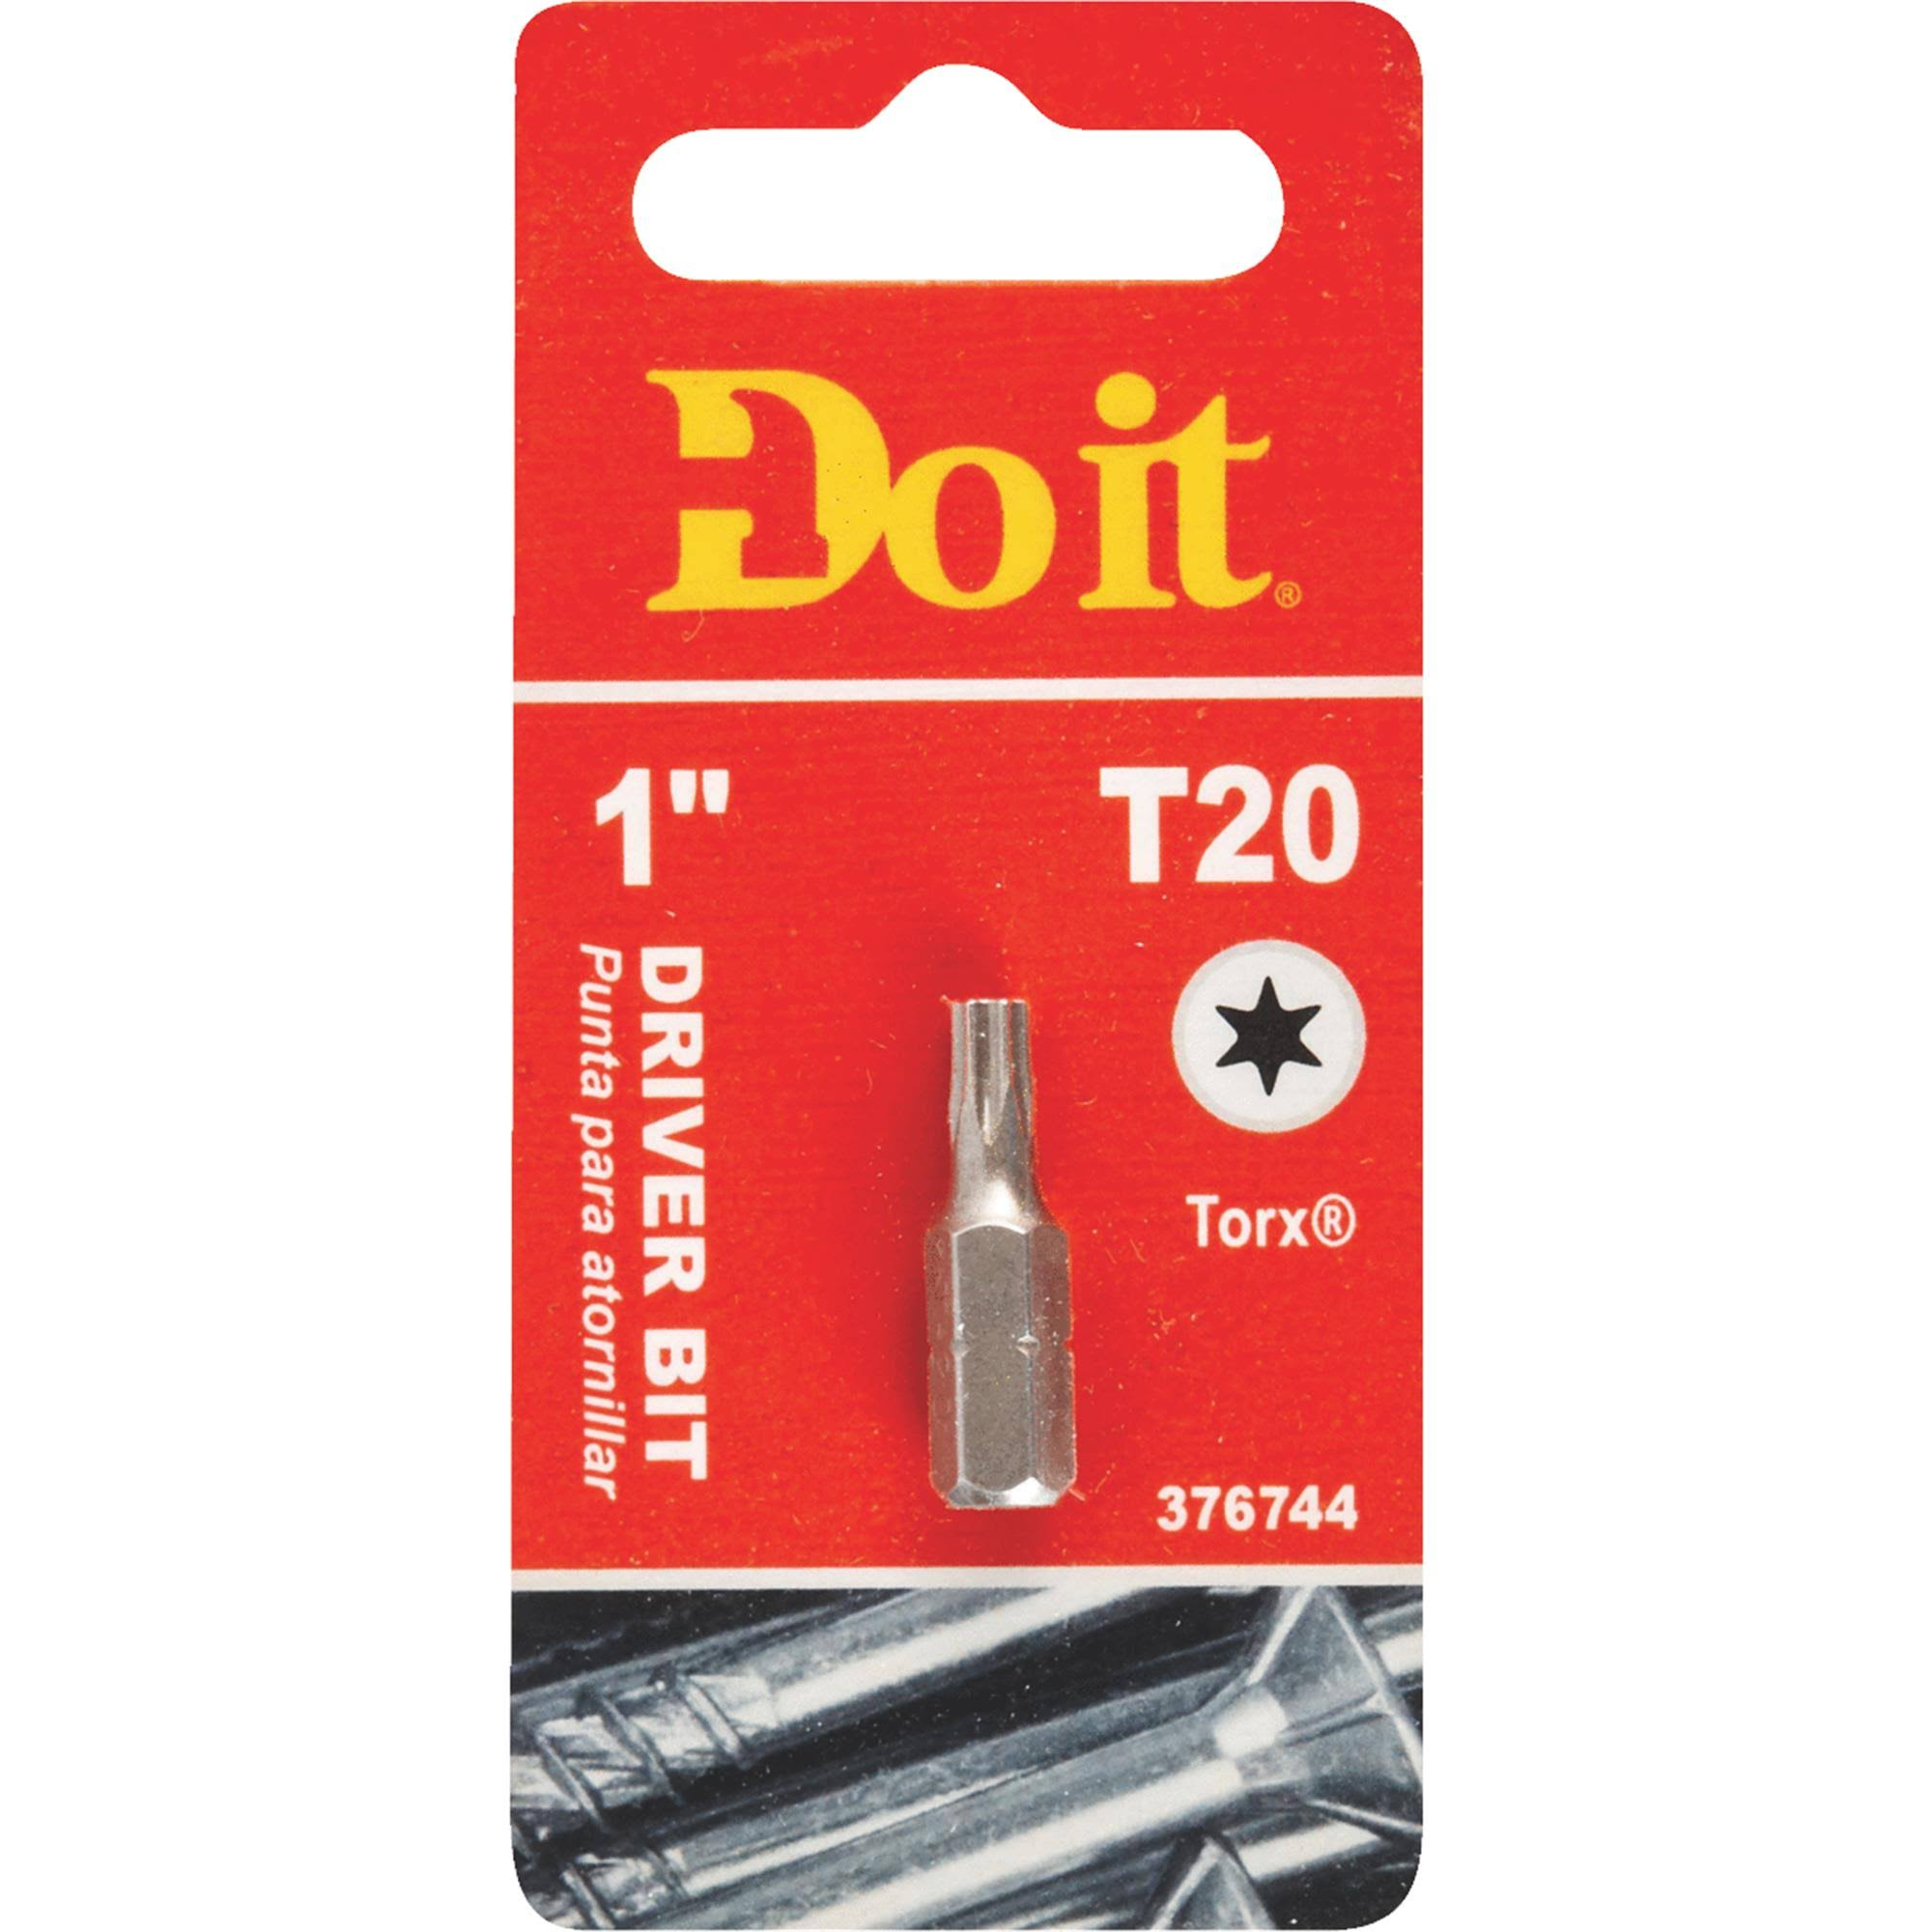 Do It Insert Screwdriver Bit - 307401DB